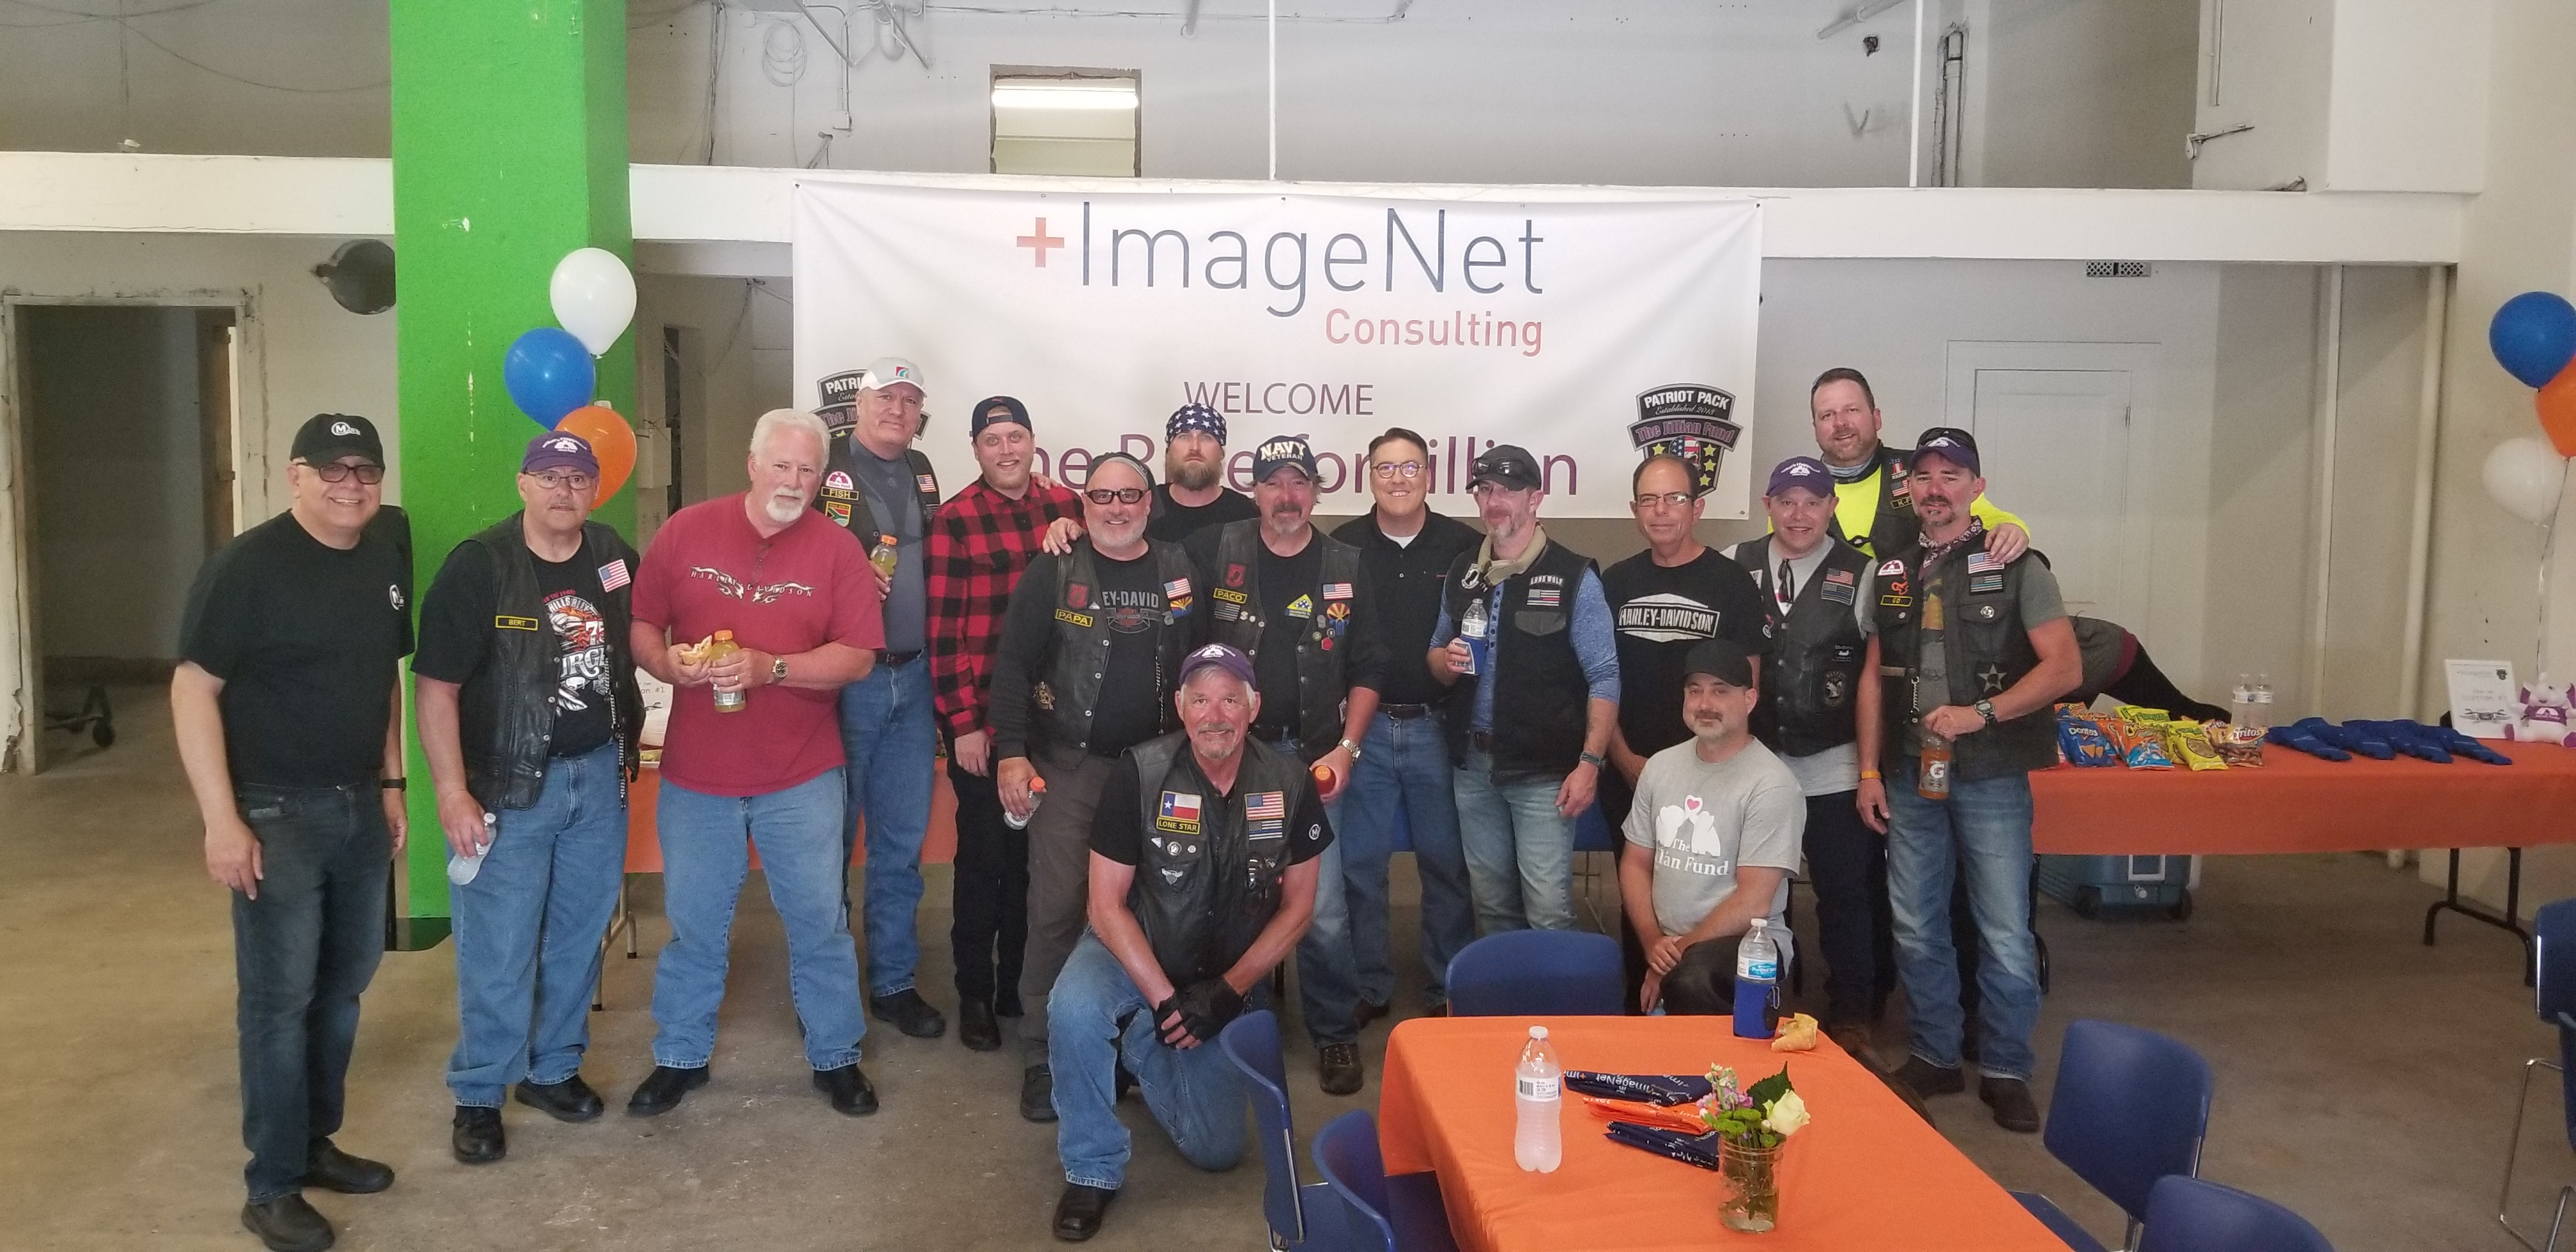 Patriot Pack at ImageNet